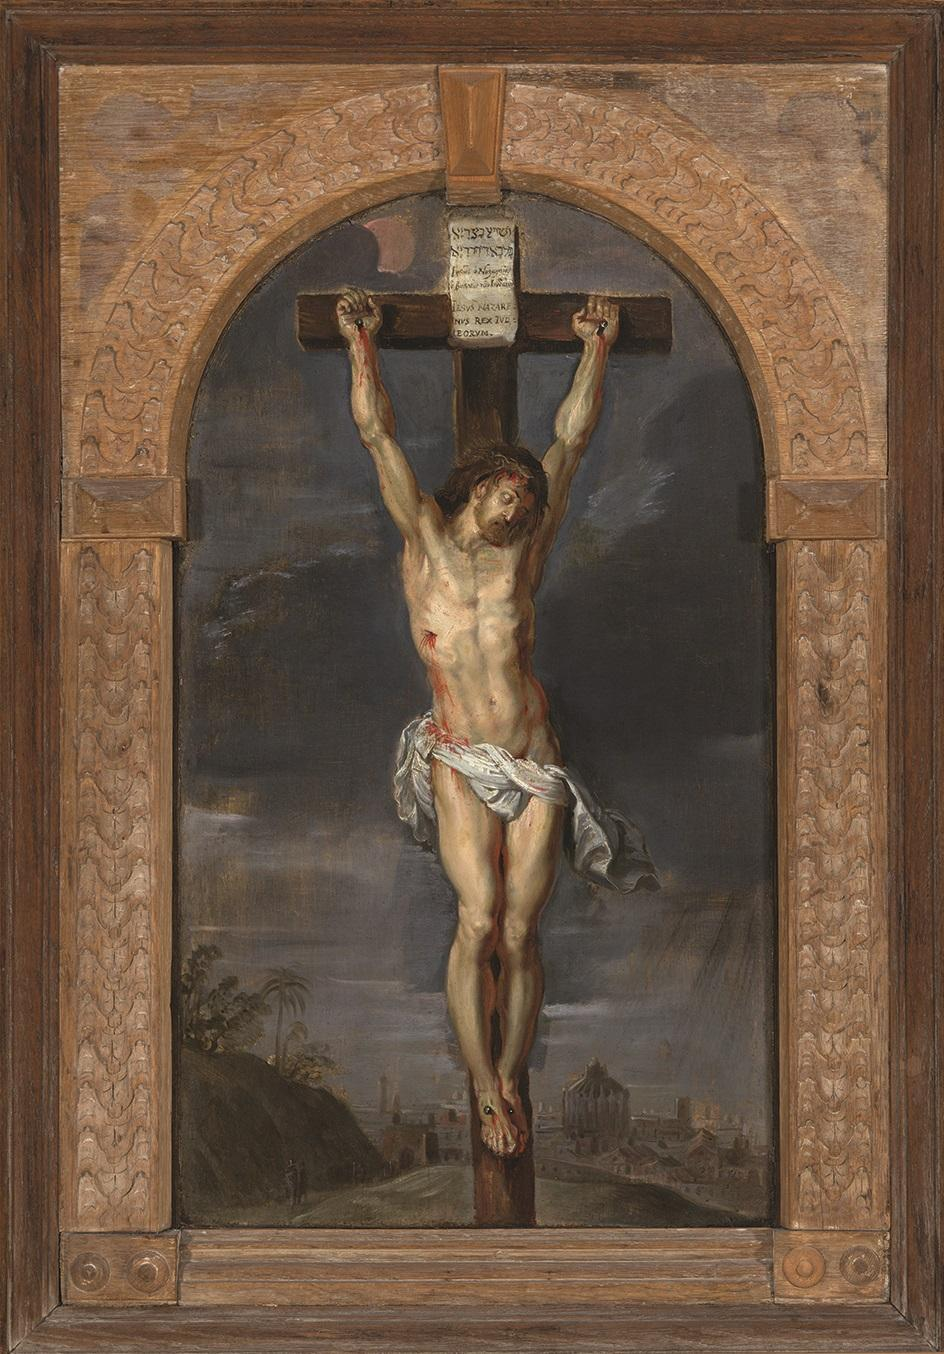 'Crucifixion' by Peter Paul Rubens and workshop